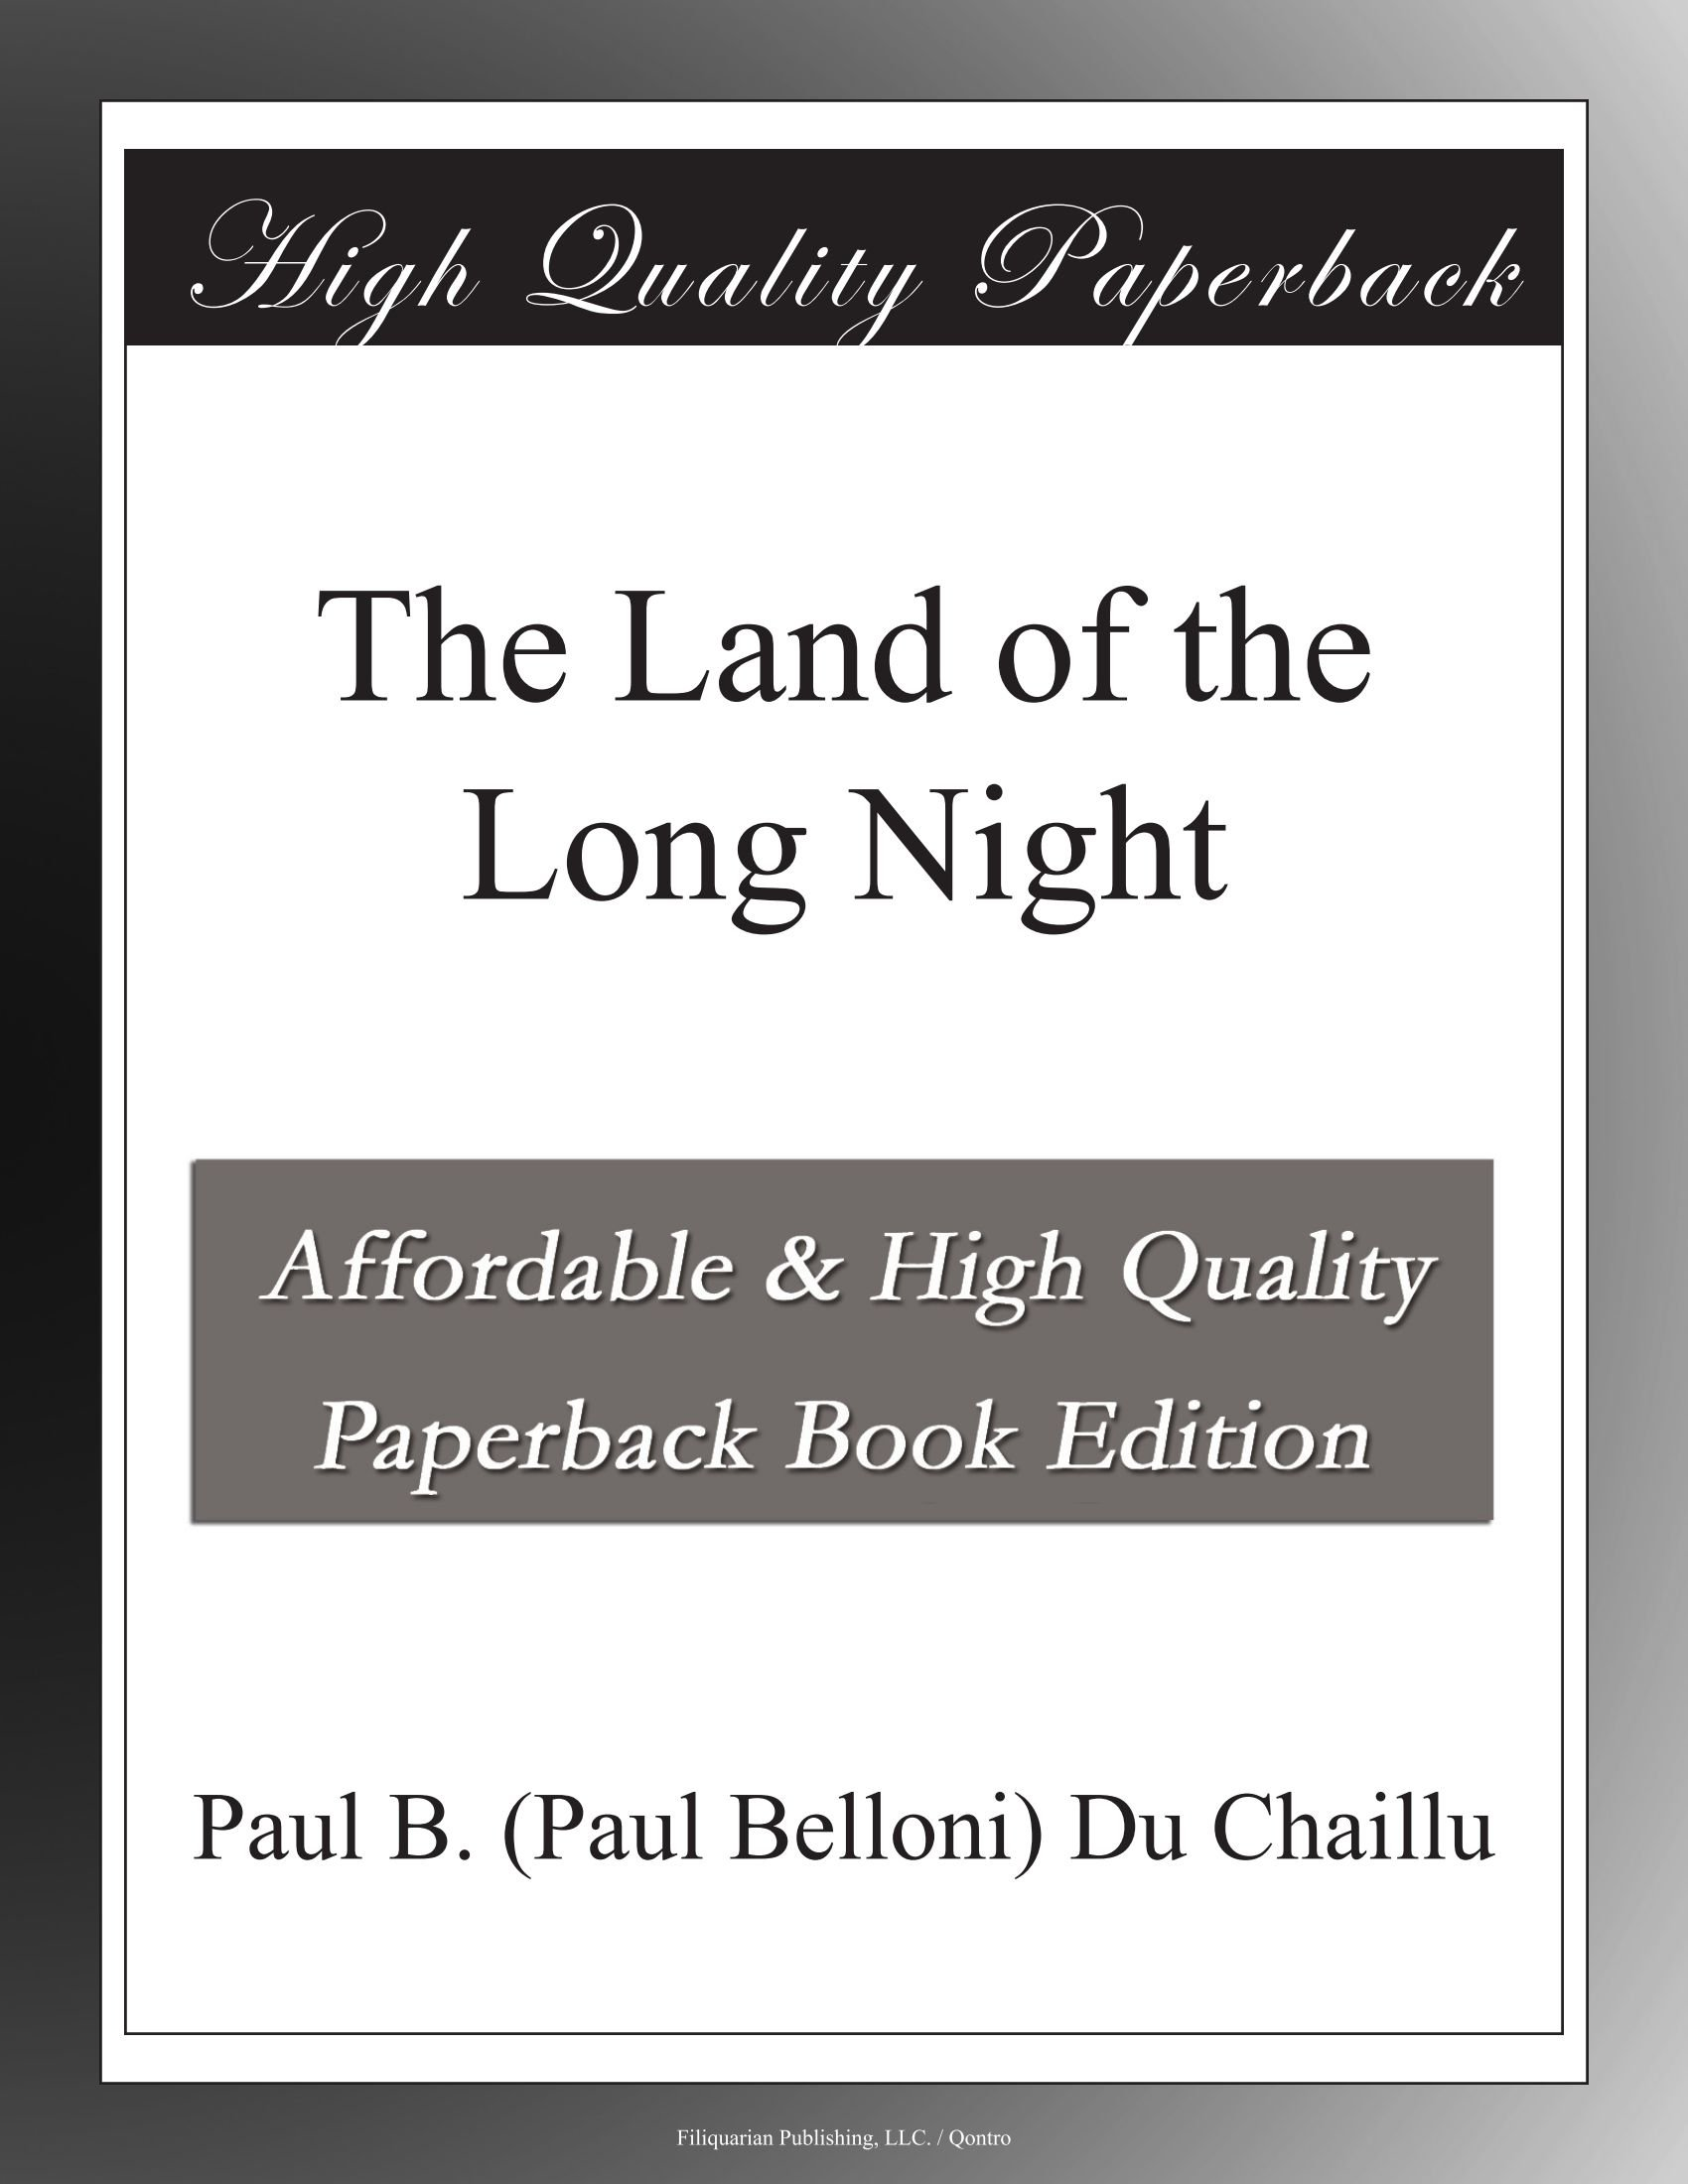 The Land of the Long Night